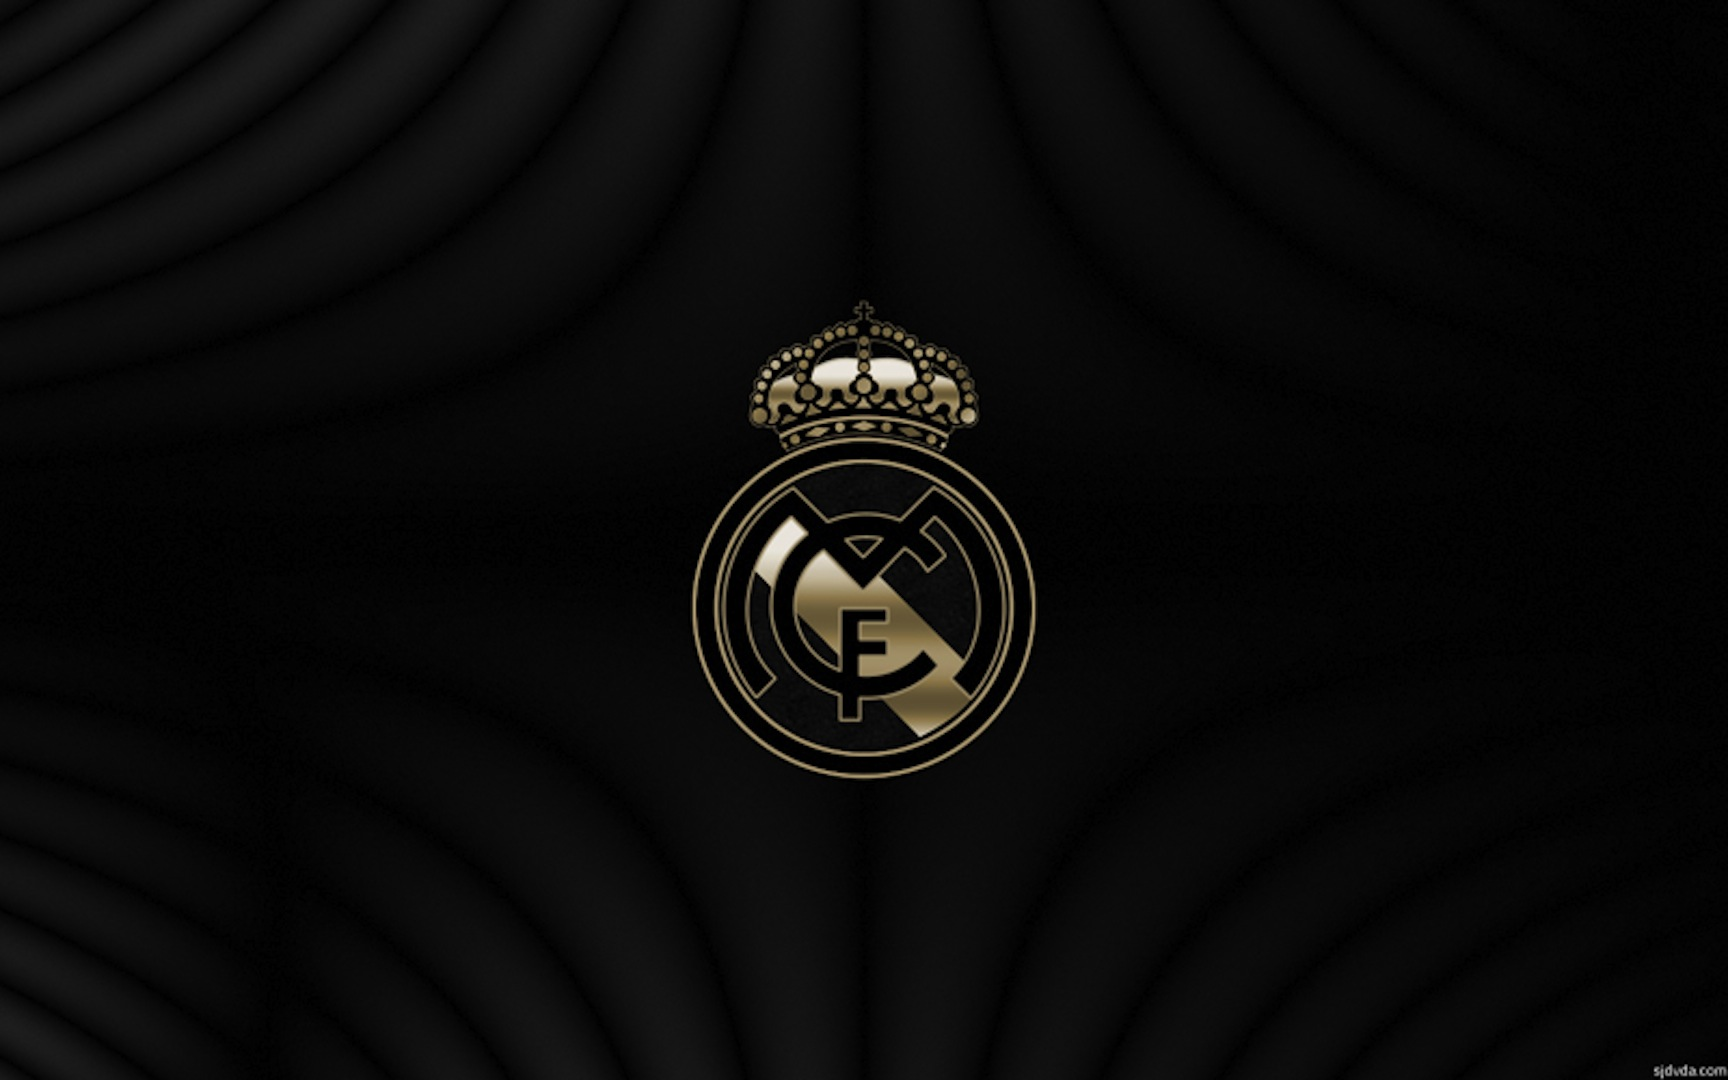 Real Madrid Logo 2016 Football Club | Fotolip.com Rich image and ...